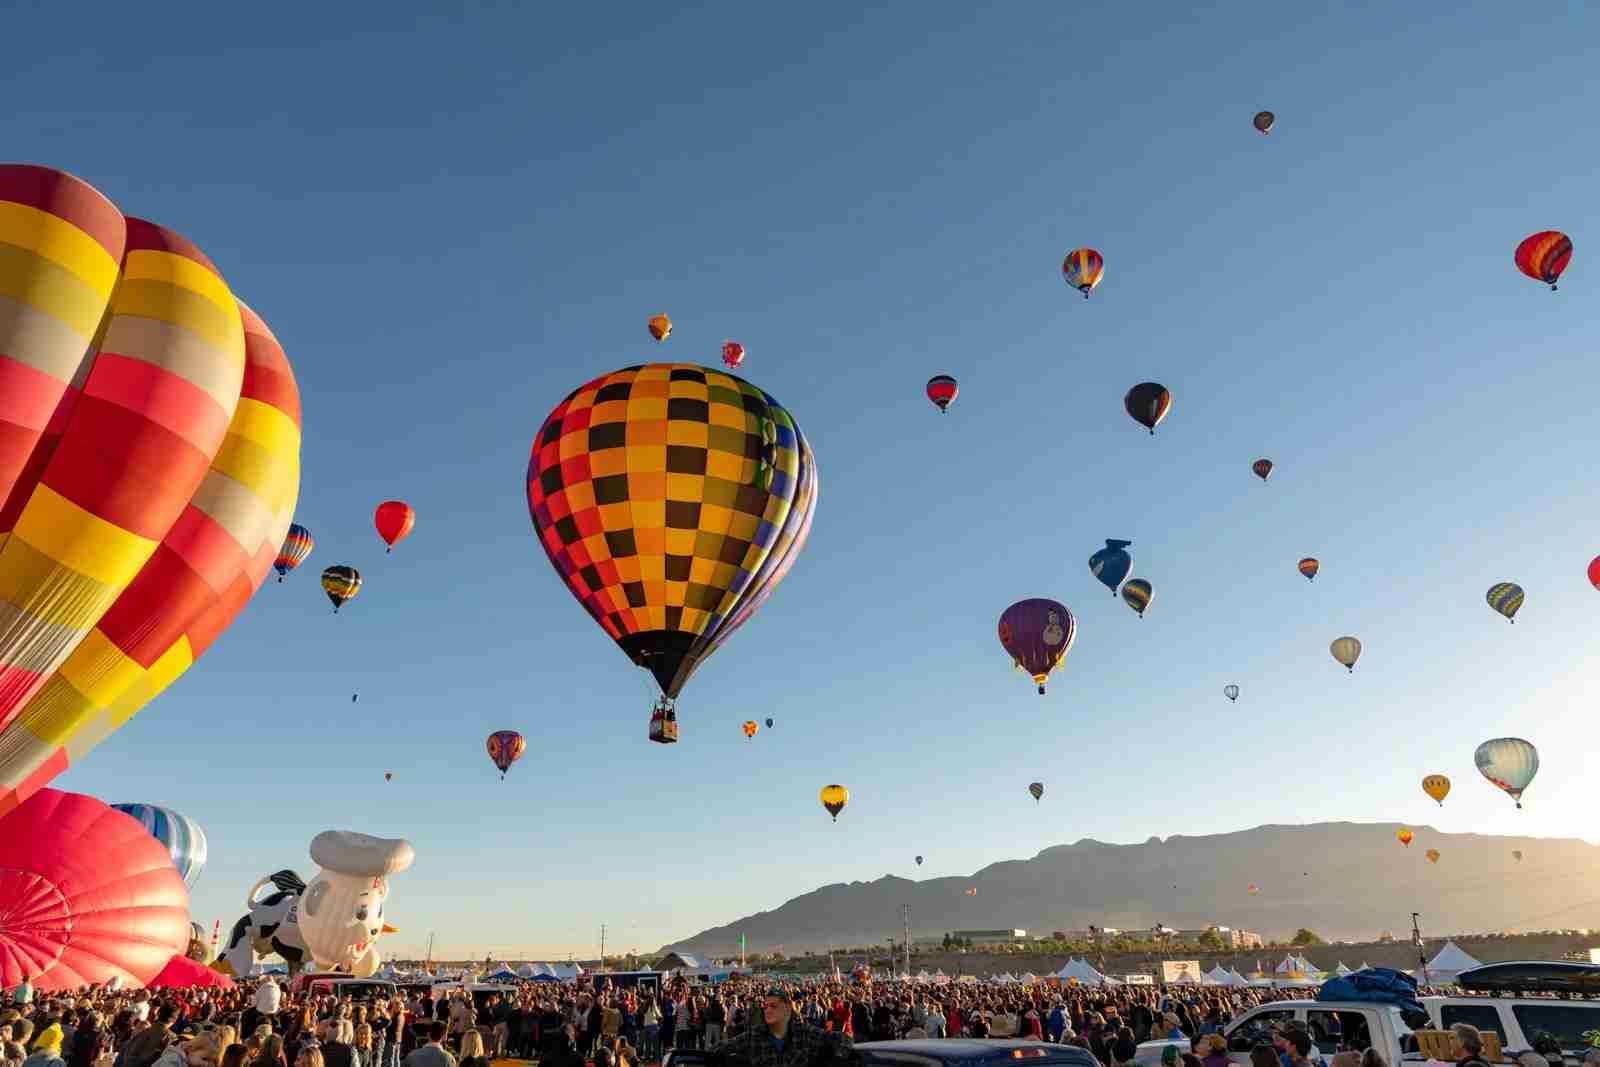 Hot Air Balloon Festival in Albuquerque. (Photo by Starcevic / Getty Images)